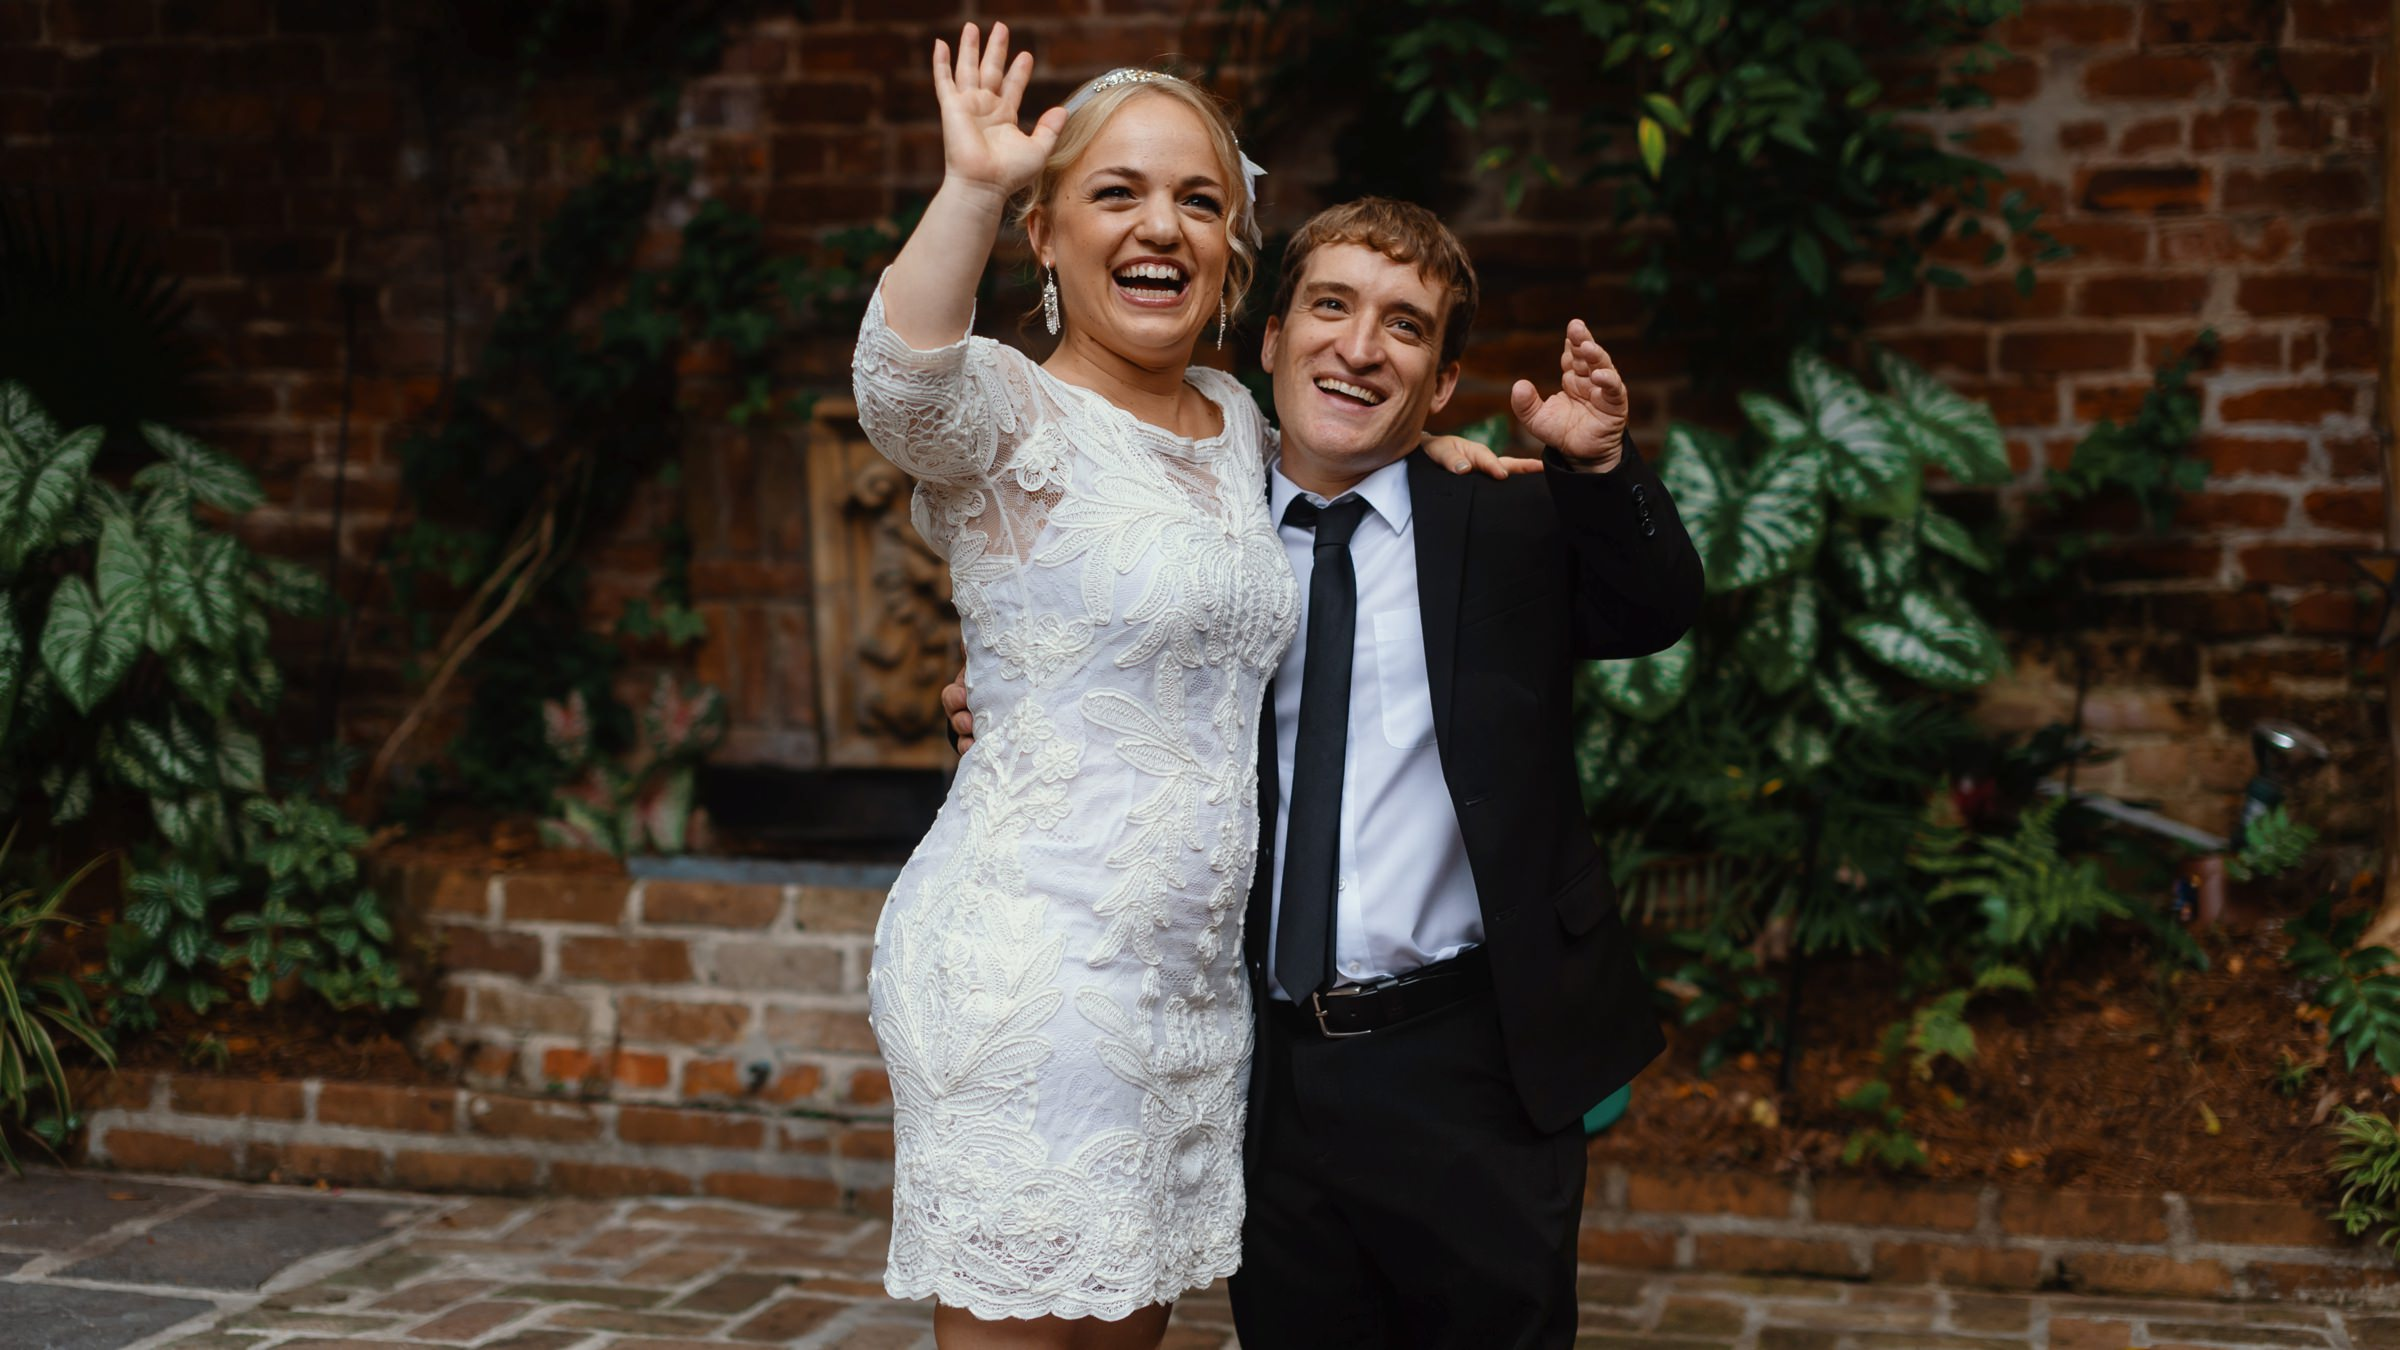 bride and groom fun portrait-new orleans-austin-houston-wedding- photo by Dark Roux